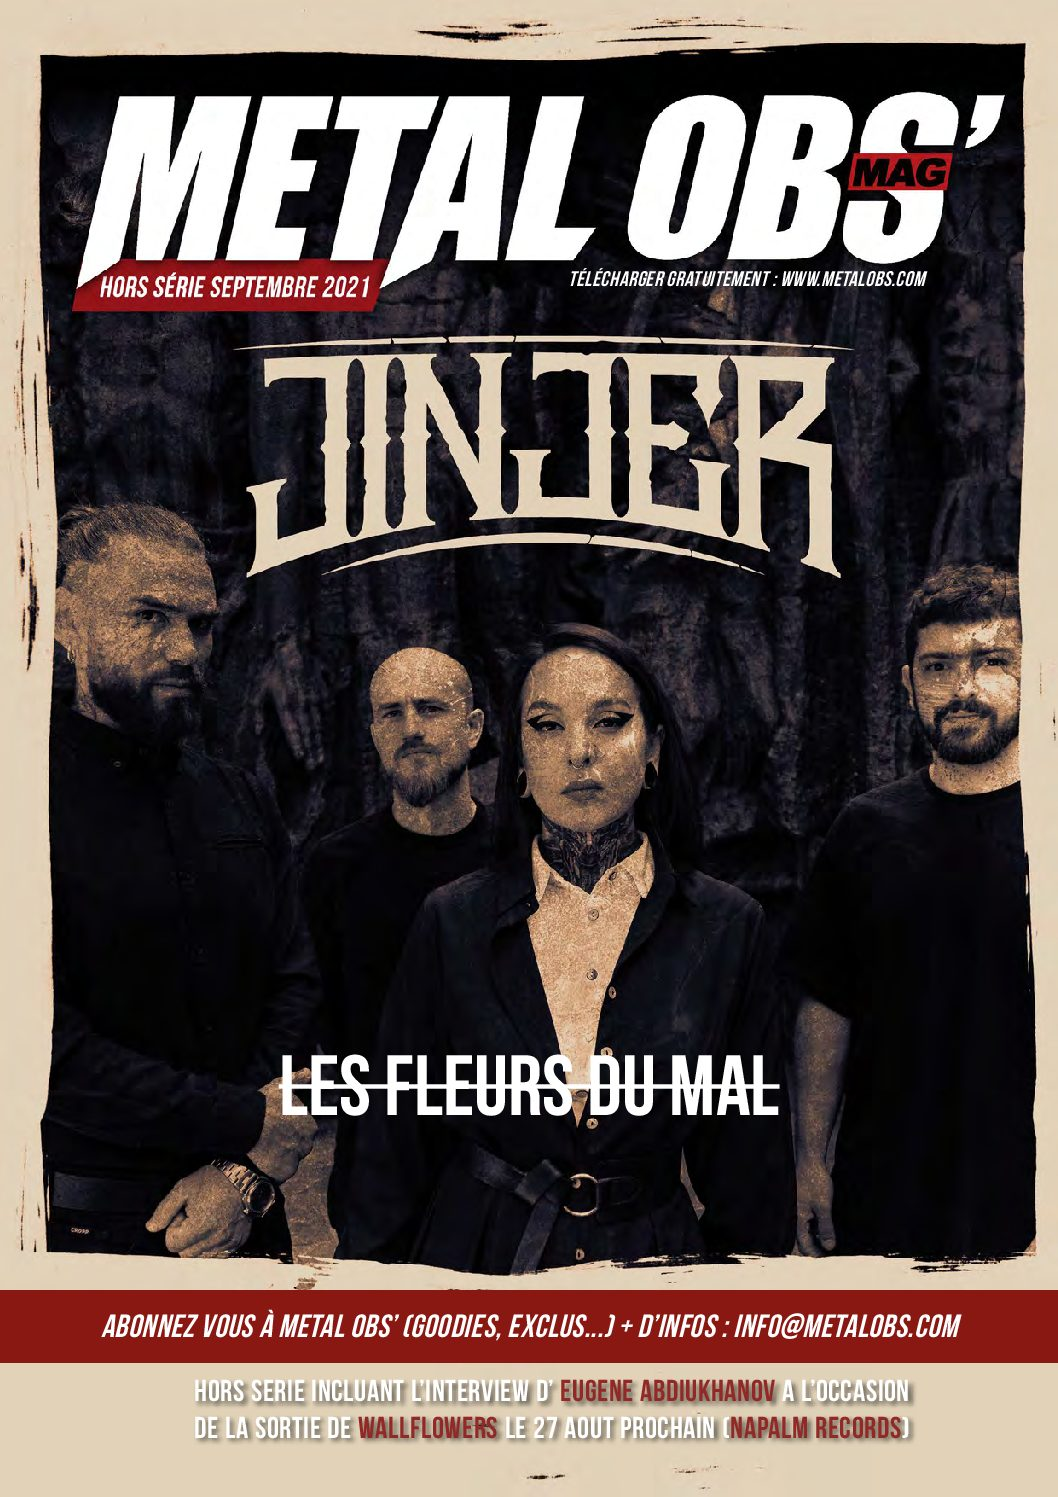 You are currently viewing Hors-série septembre 2021 : JINJER